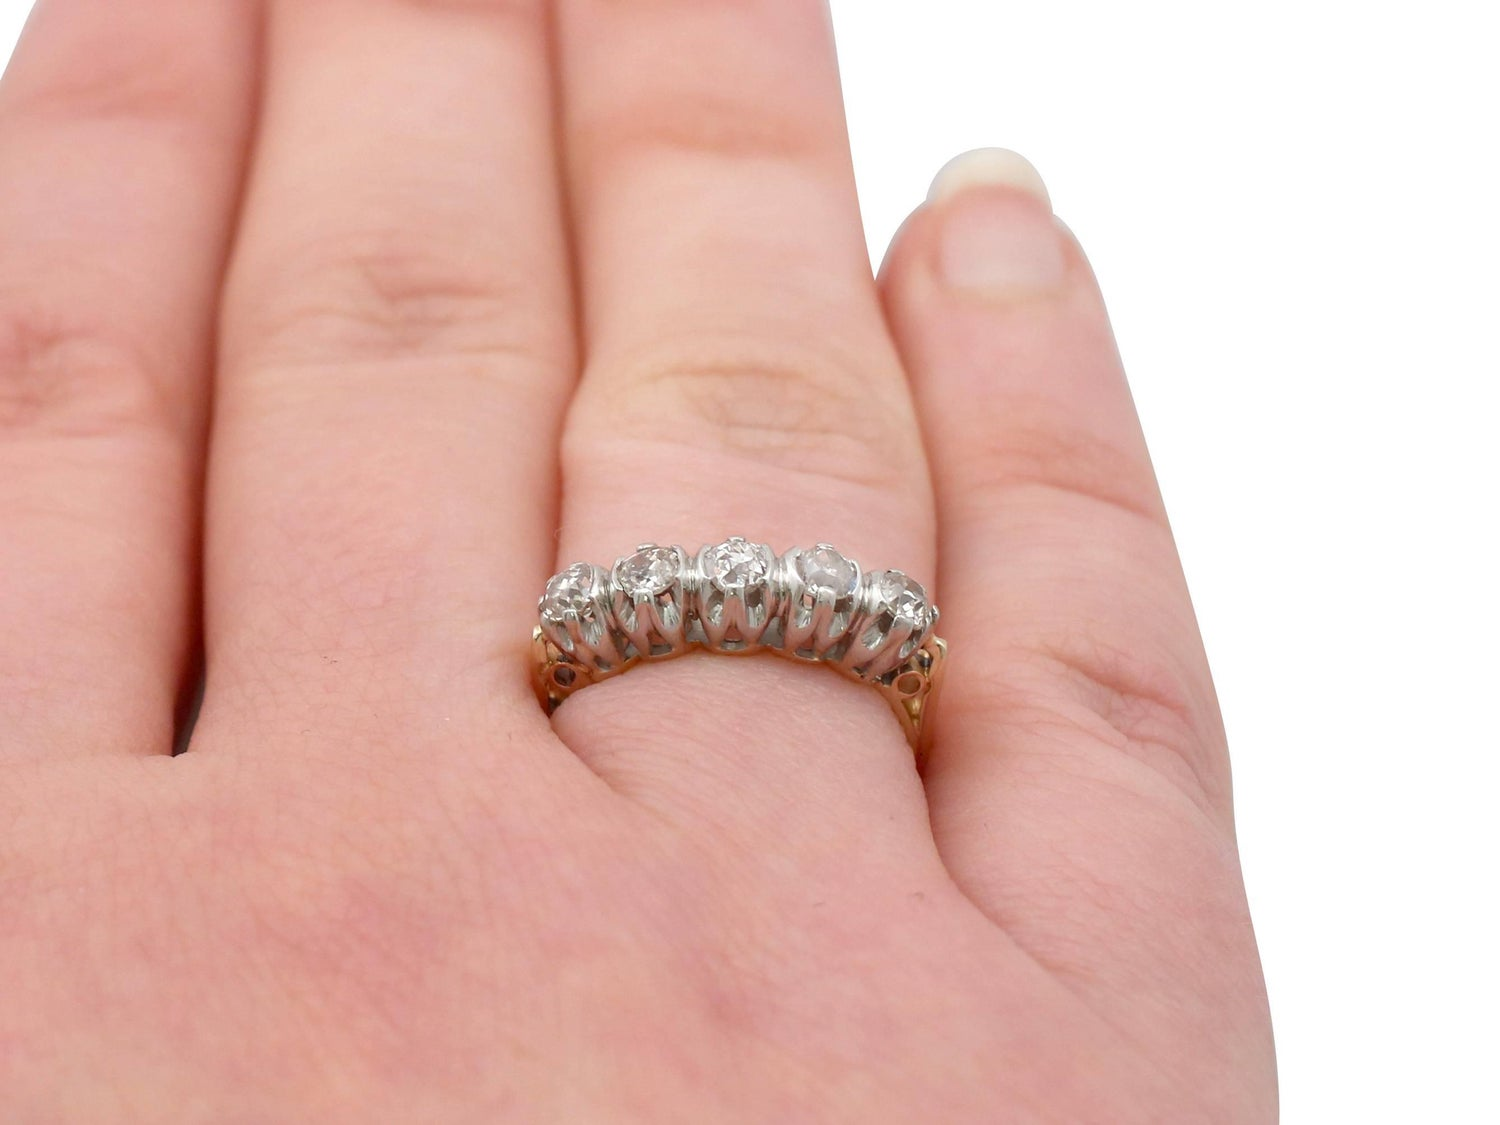 1910s Diamond Yellow Gold Five-Stone Ring For Sale at 1stdibs